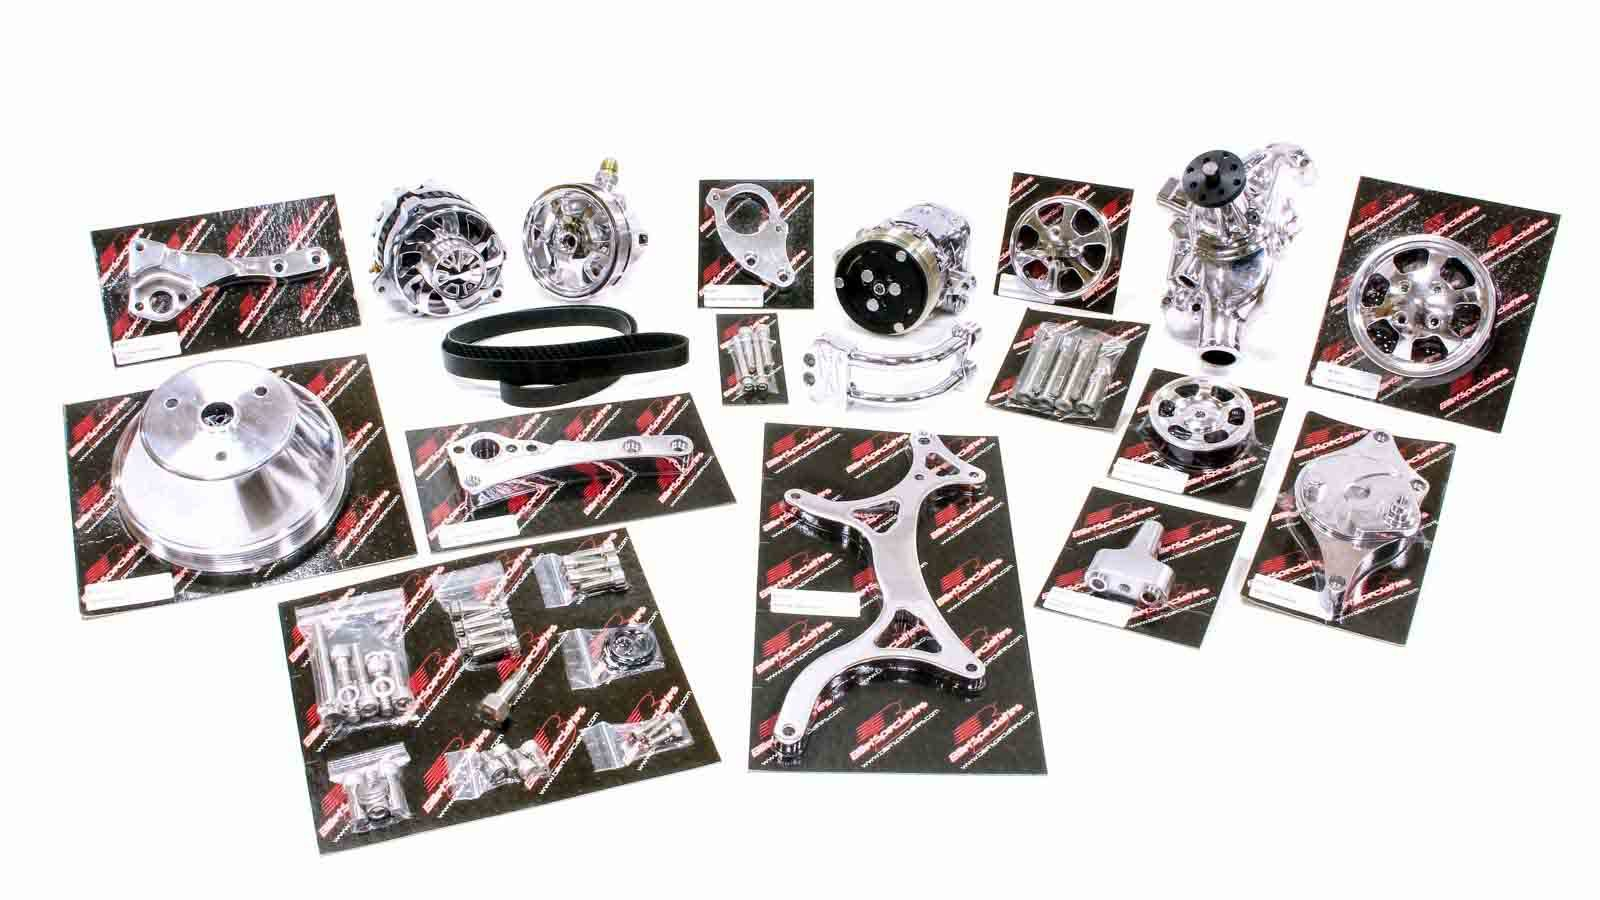 Billet Specialities 13220WP Pulley Kit, Premium Tru Trac, 6 Rib Serpentine, Polished, Short Water Pump, Small Block Chevy, Kit